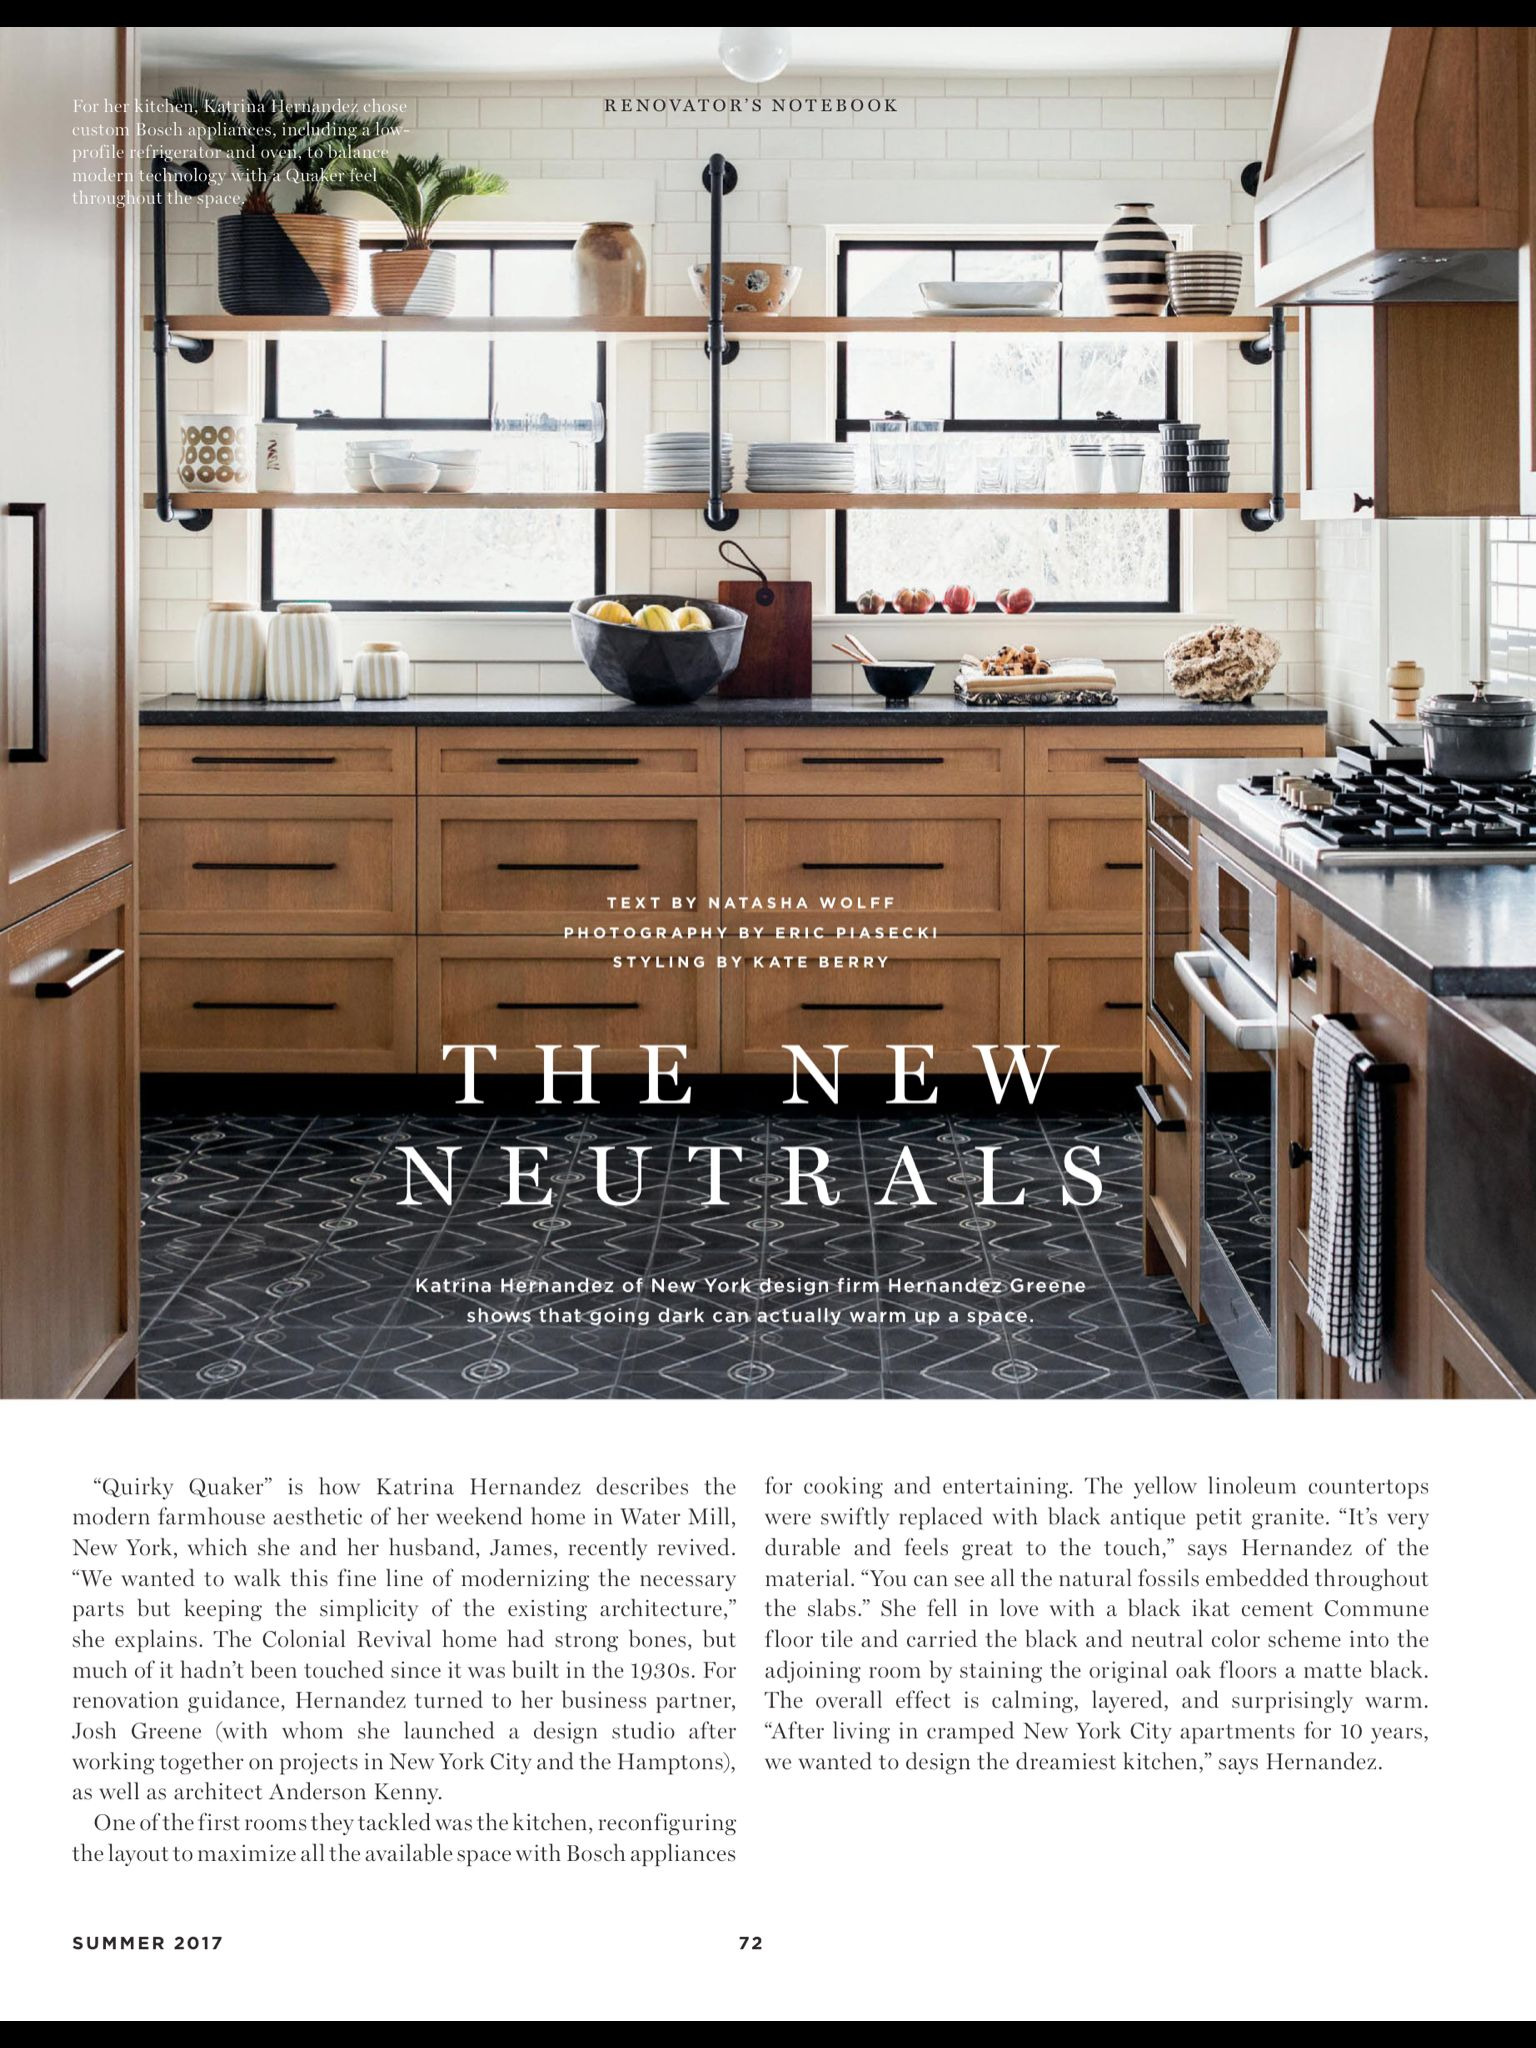 Renovator S Notebook From Domino Summer 2017 Affordable Kitchen Remodeling Kitchen Renovation Kitchen Interior